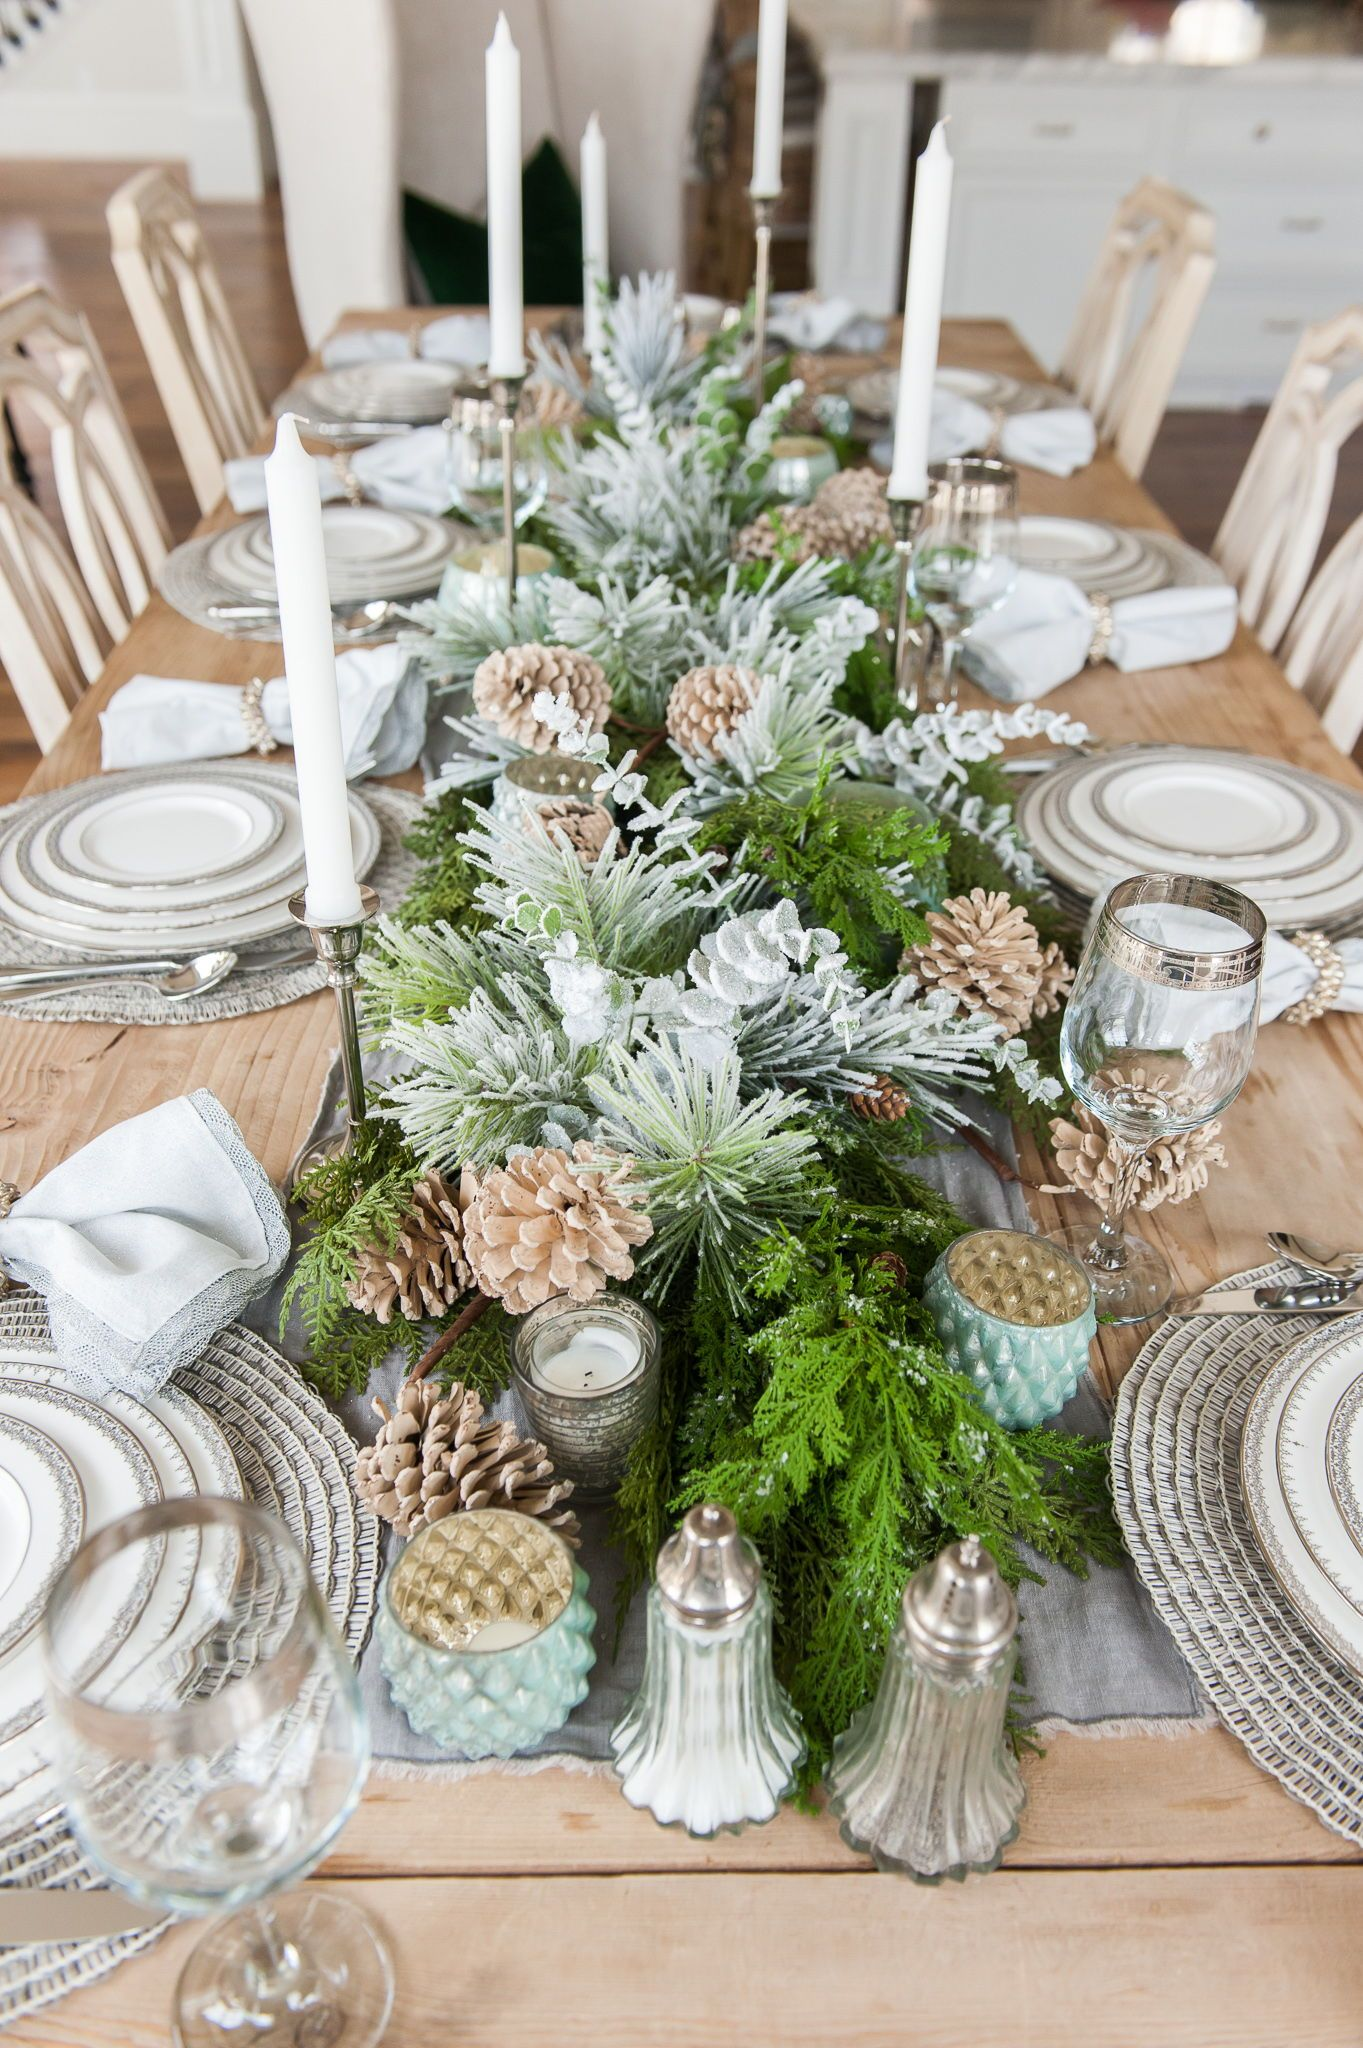 The Perfect Holiday Tablescape Transitions Fall To Winter Using Faux Frosted Tip Pine Branc Holiday Tablescapes Christmas Table Decorations Table Setting Decor